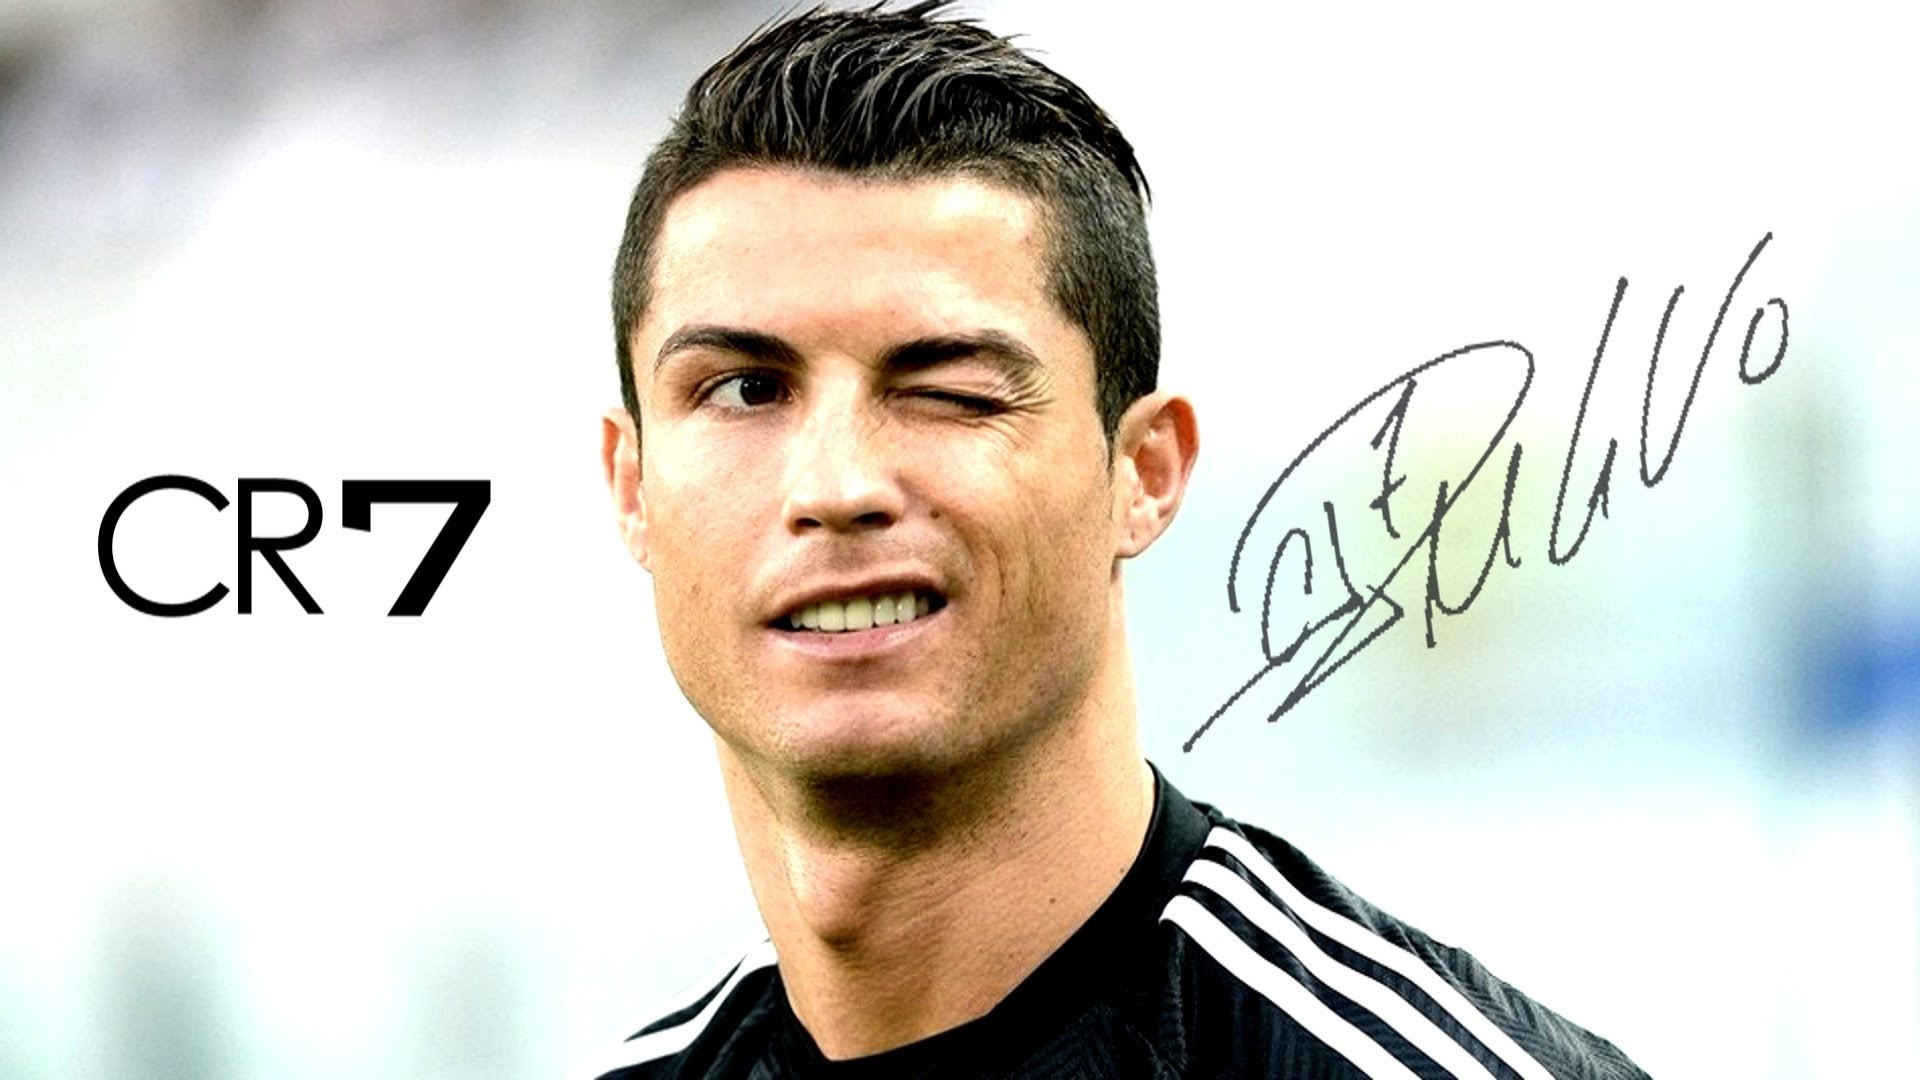 Cristiano Ronaldo Computer Wallpapers